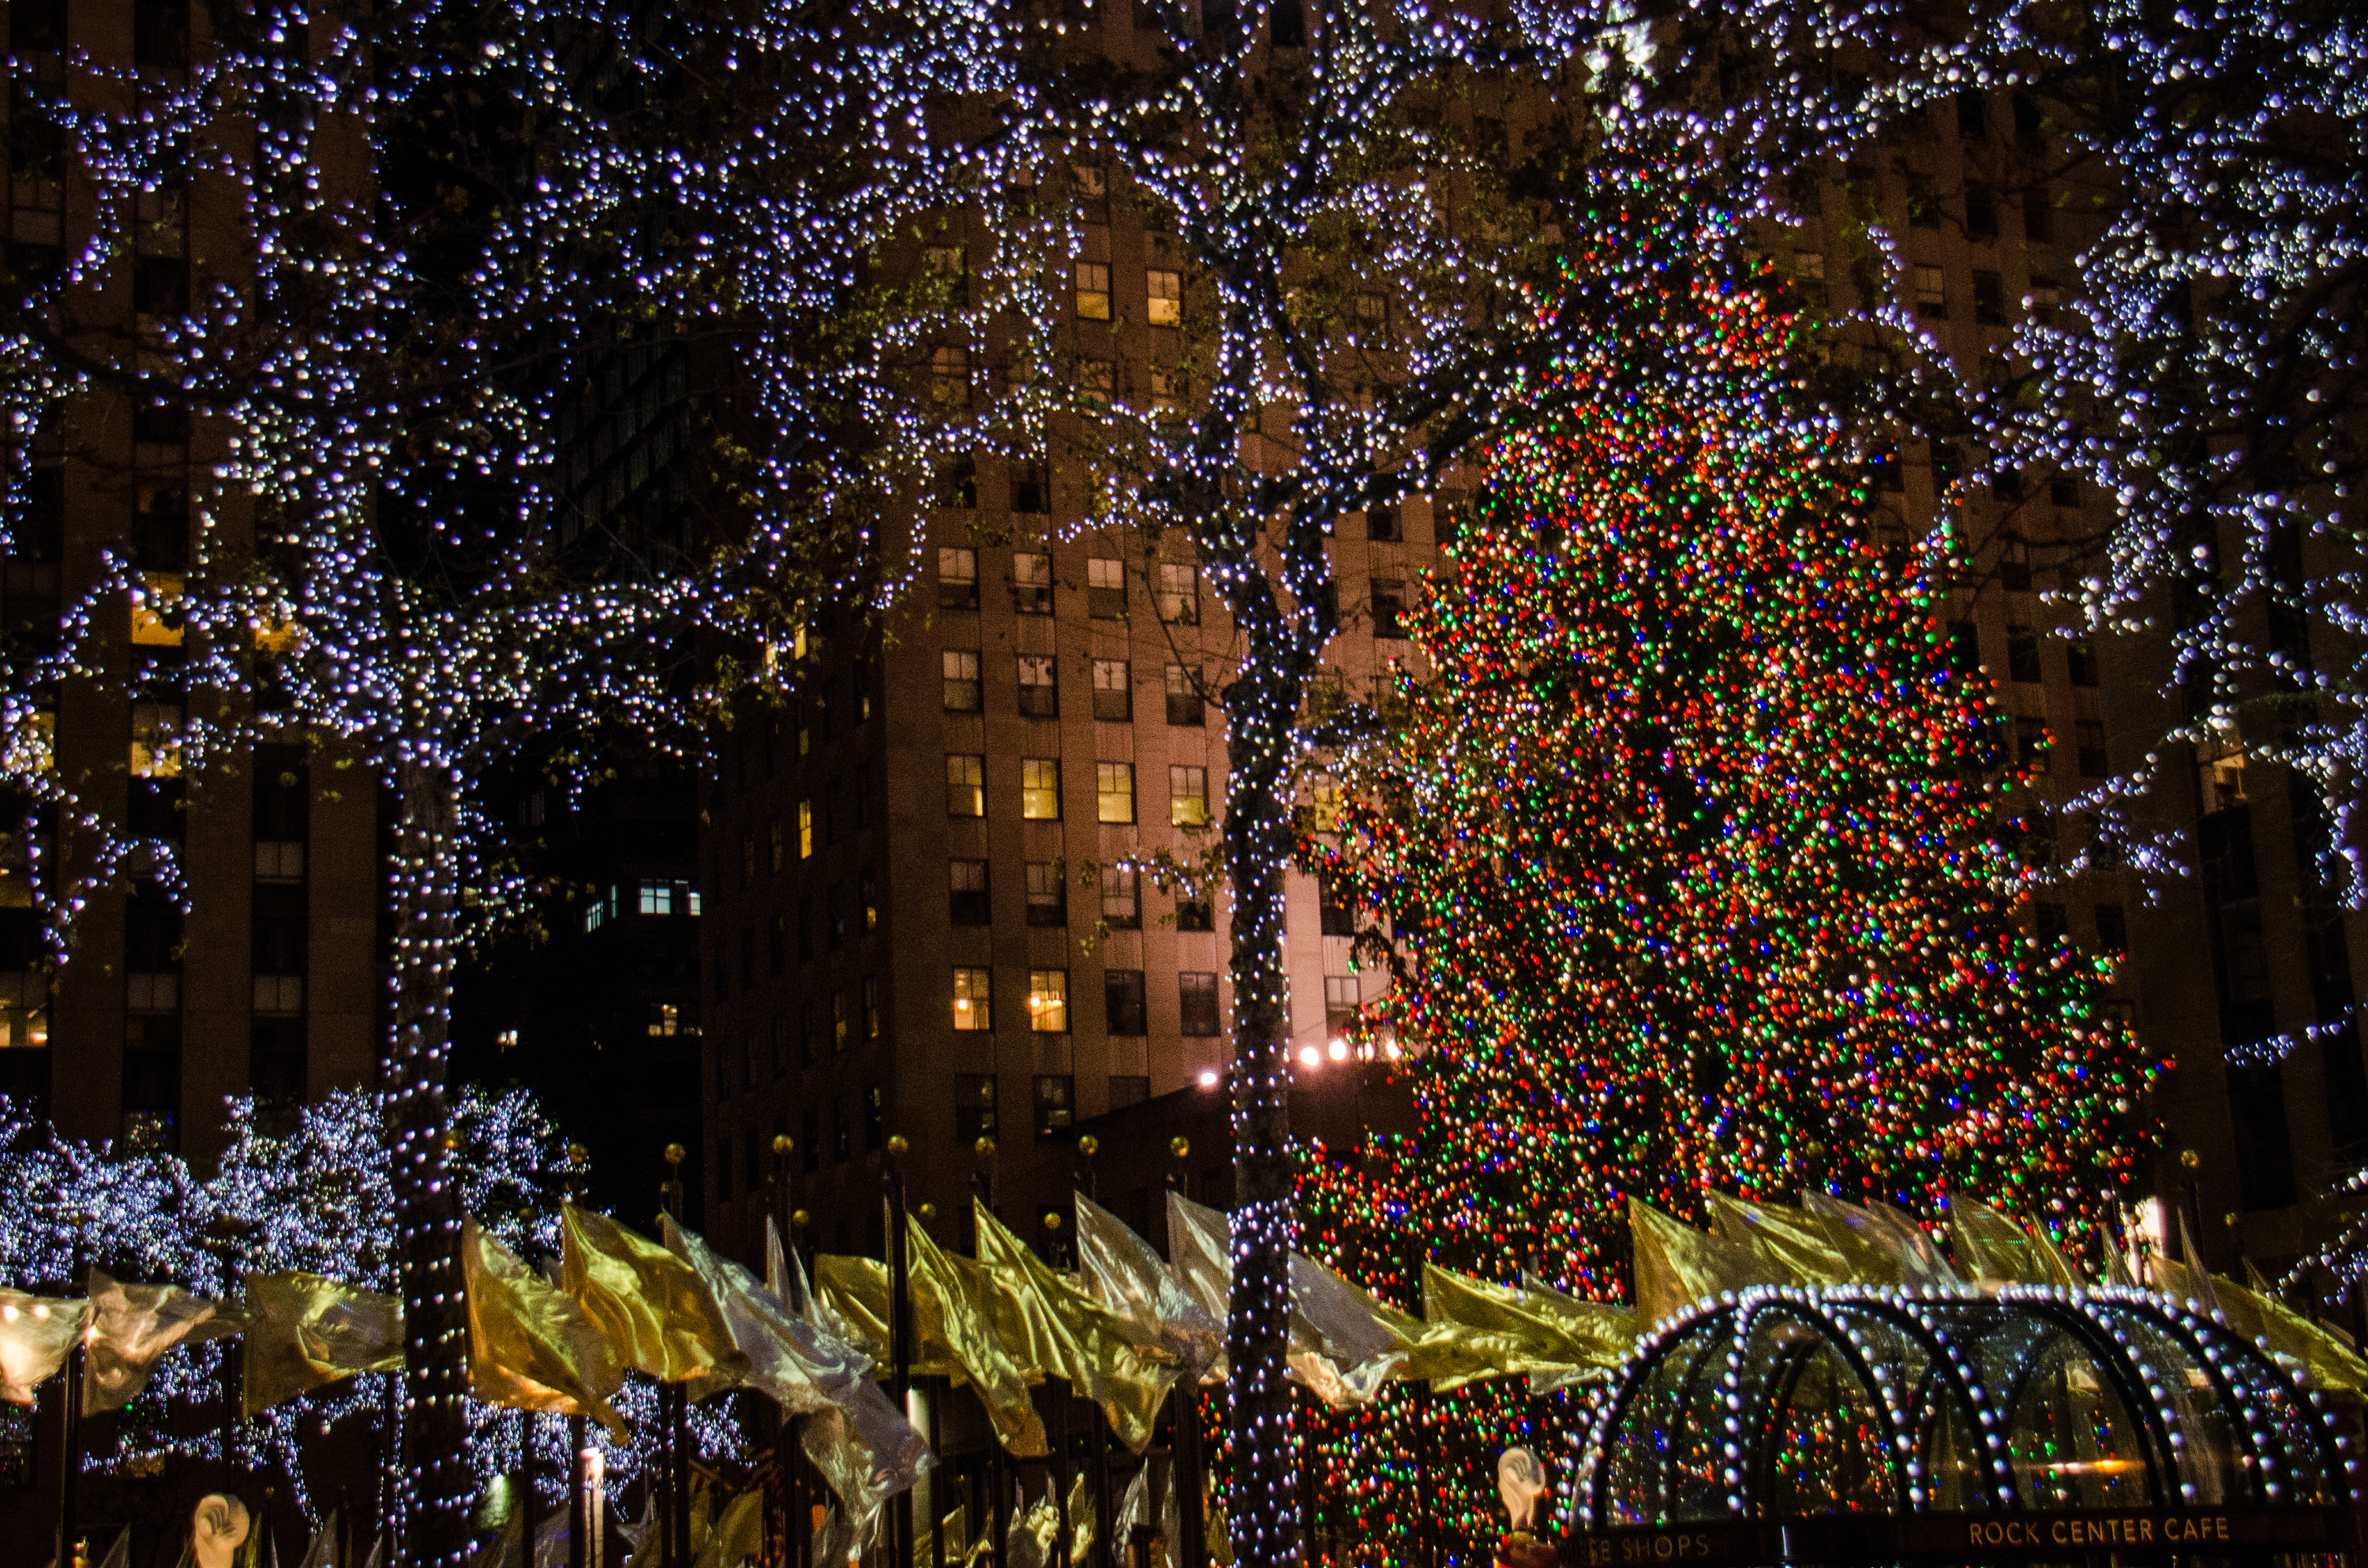 Best Christmas lights NYC has to offer plus festive attractions